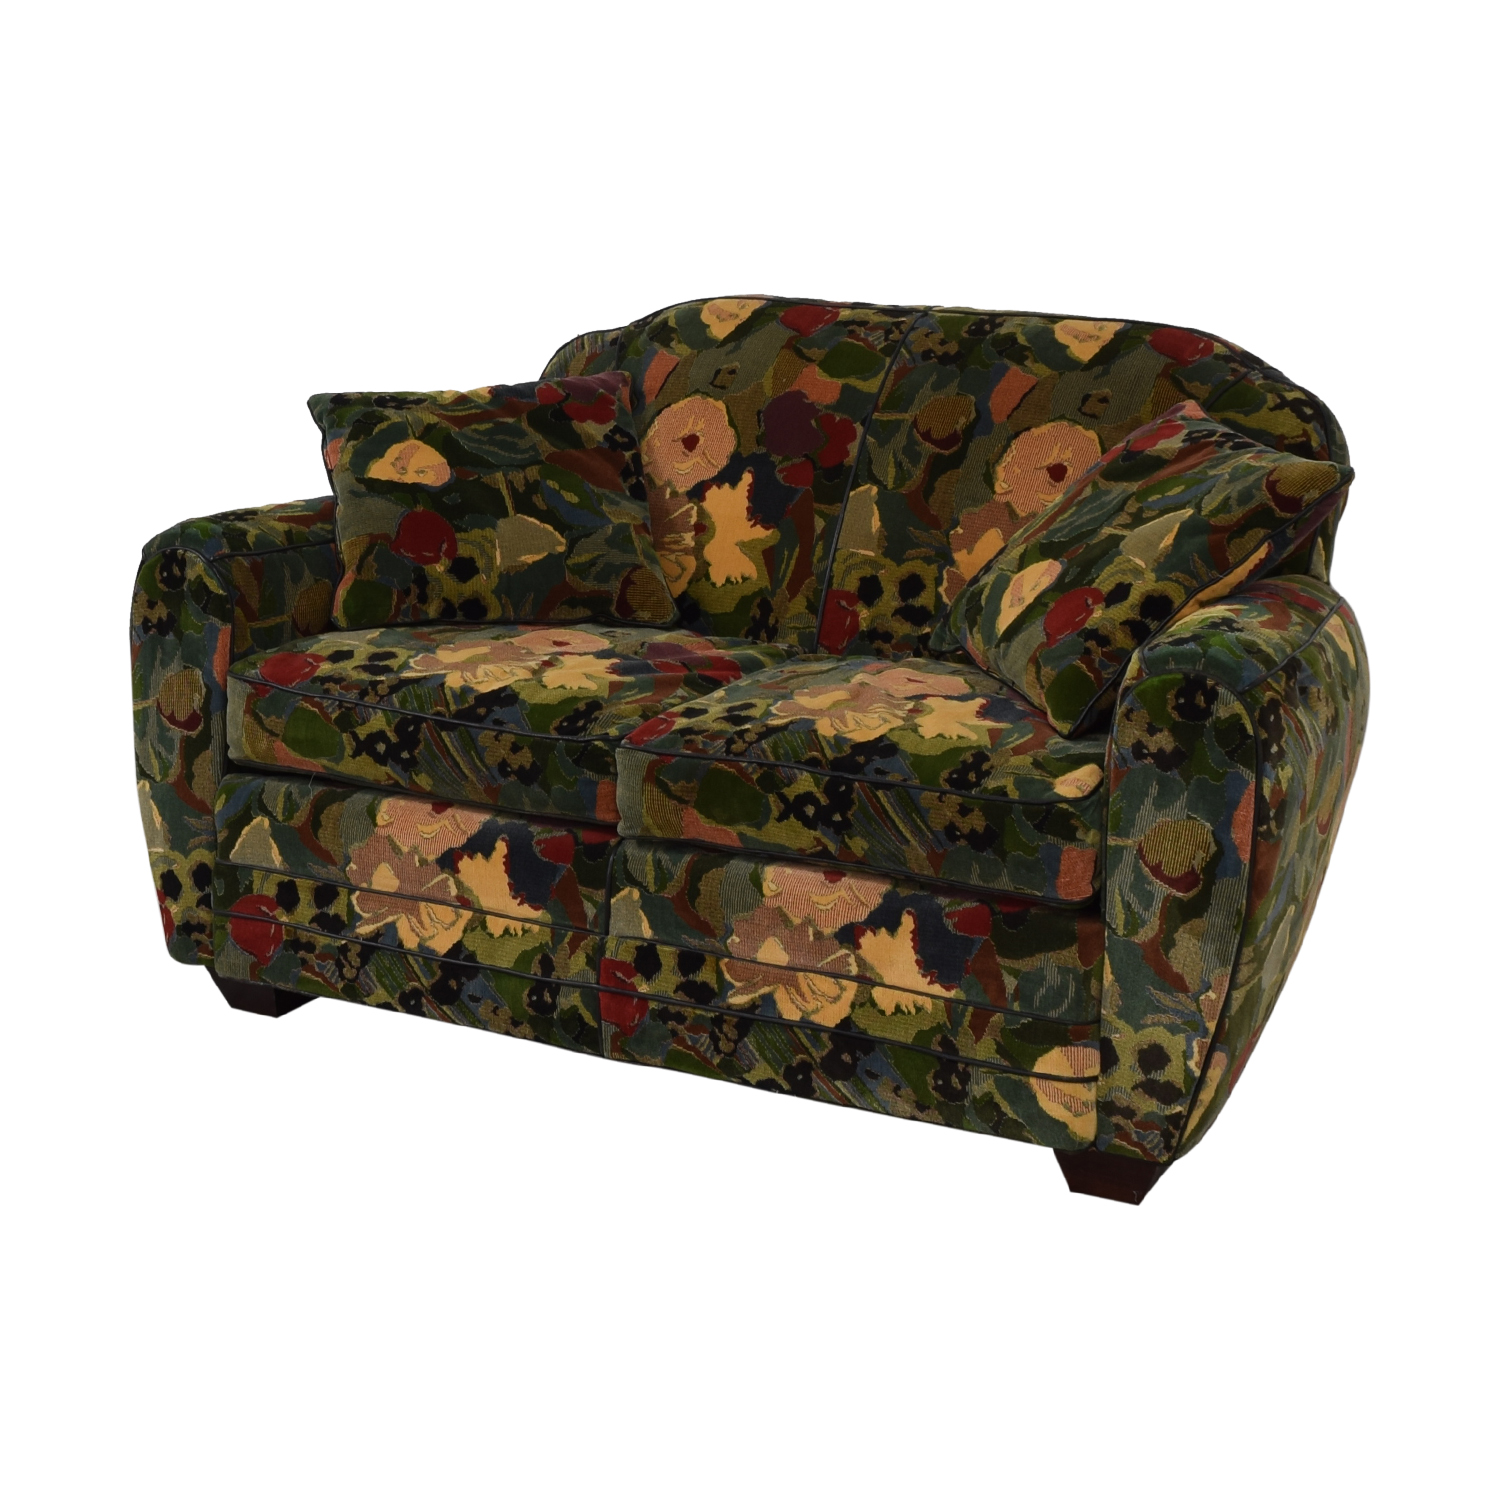 Old Hickory Tannery Old Hickory Tannery Floral Loveseat Loveseats